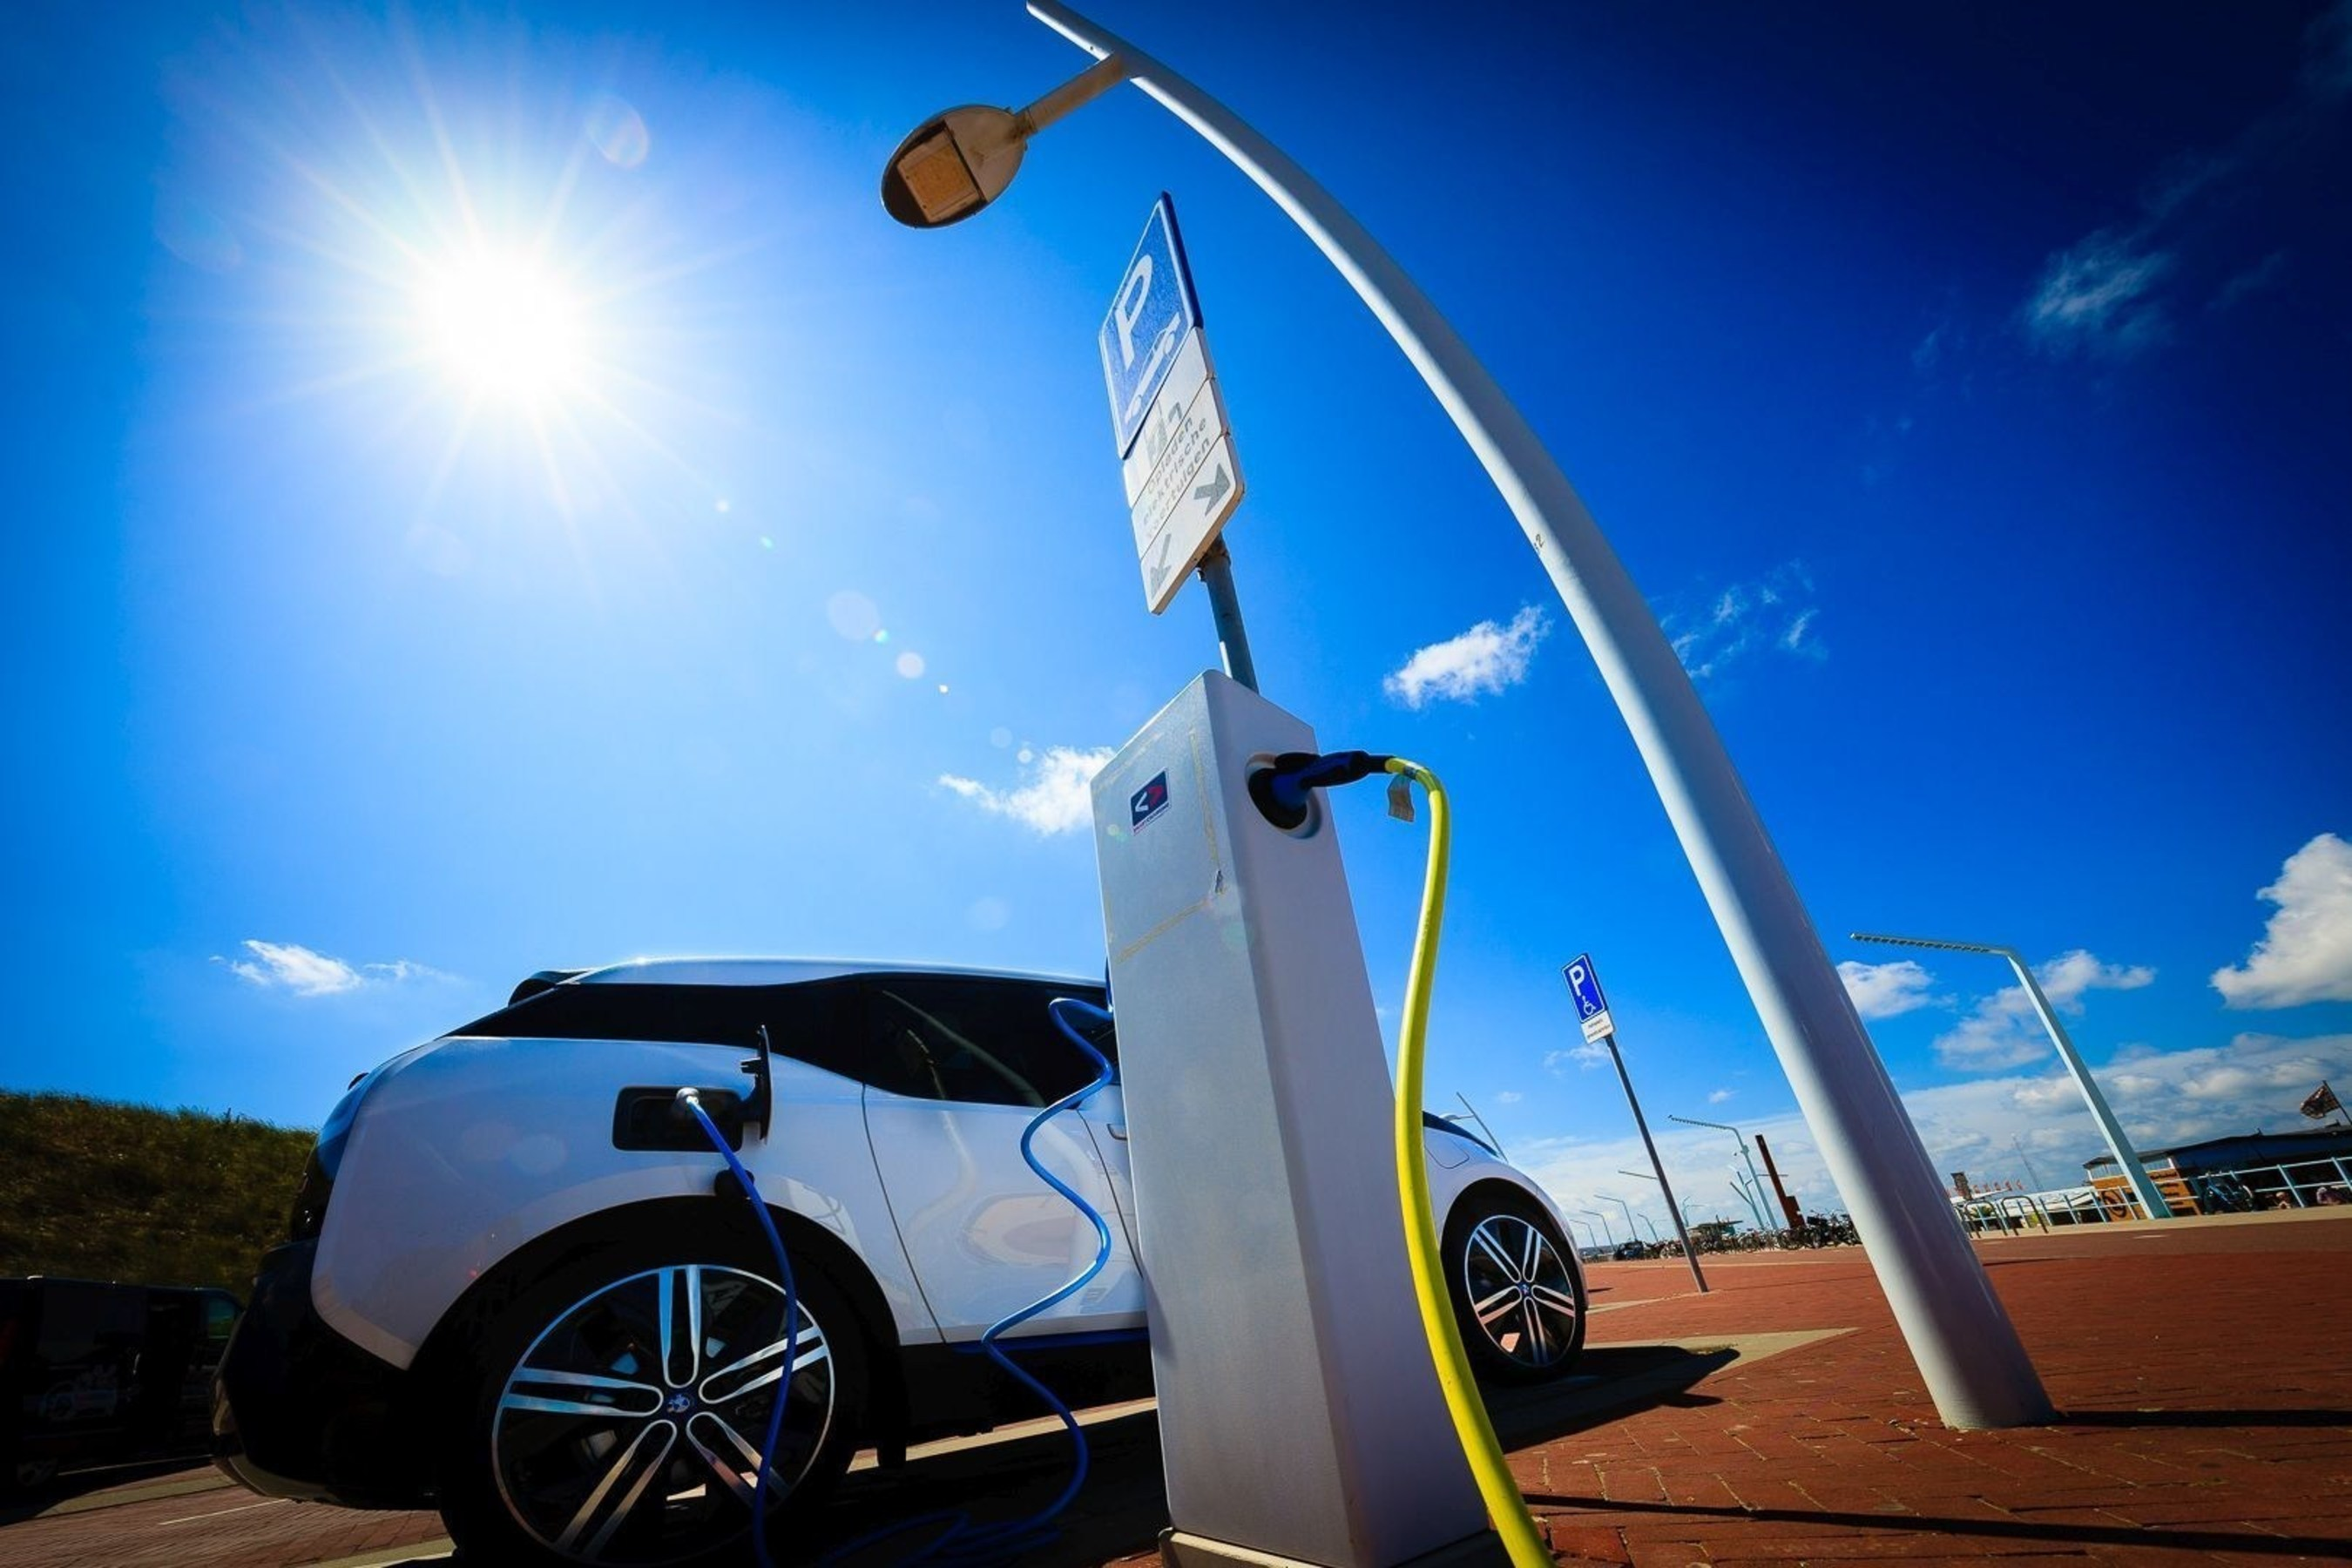 A full electric vehicle charging at a Smart Charging station in the city of The Hague (PRNewsFoto/Living Lab Smart Charging)